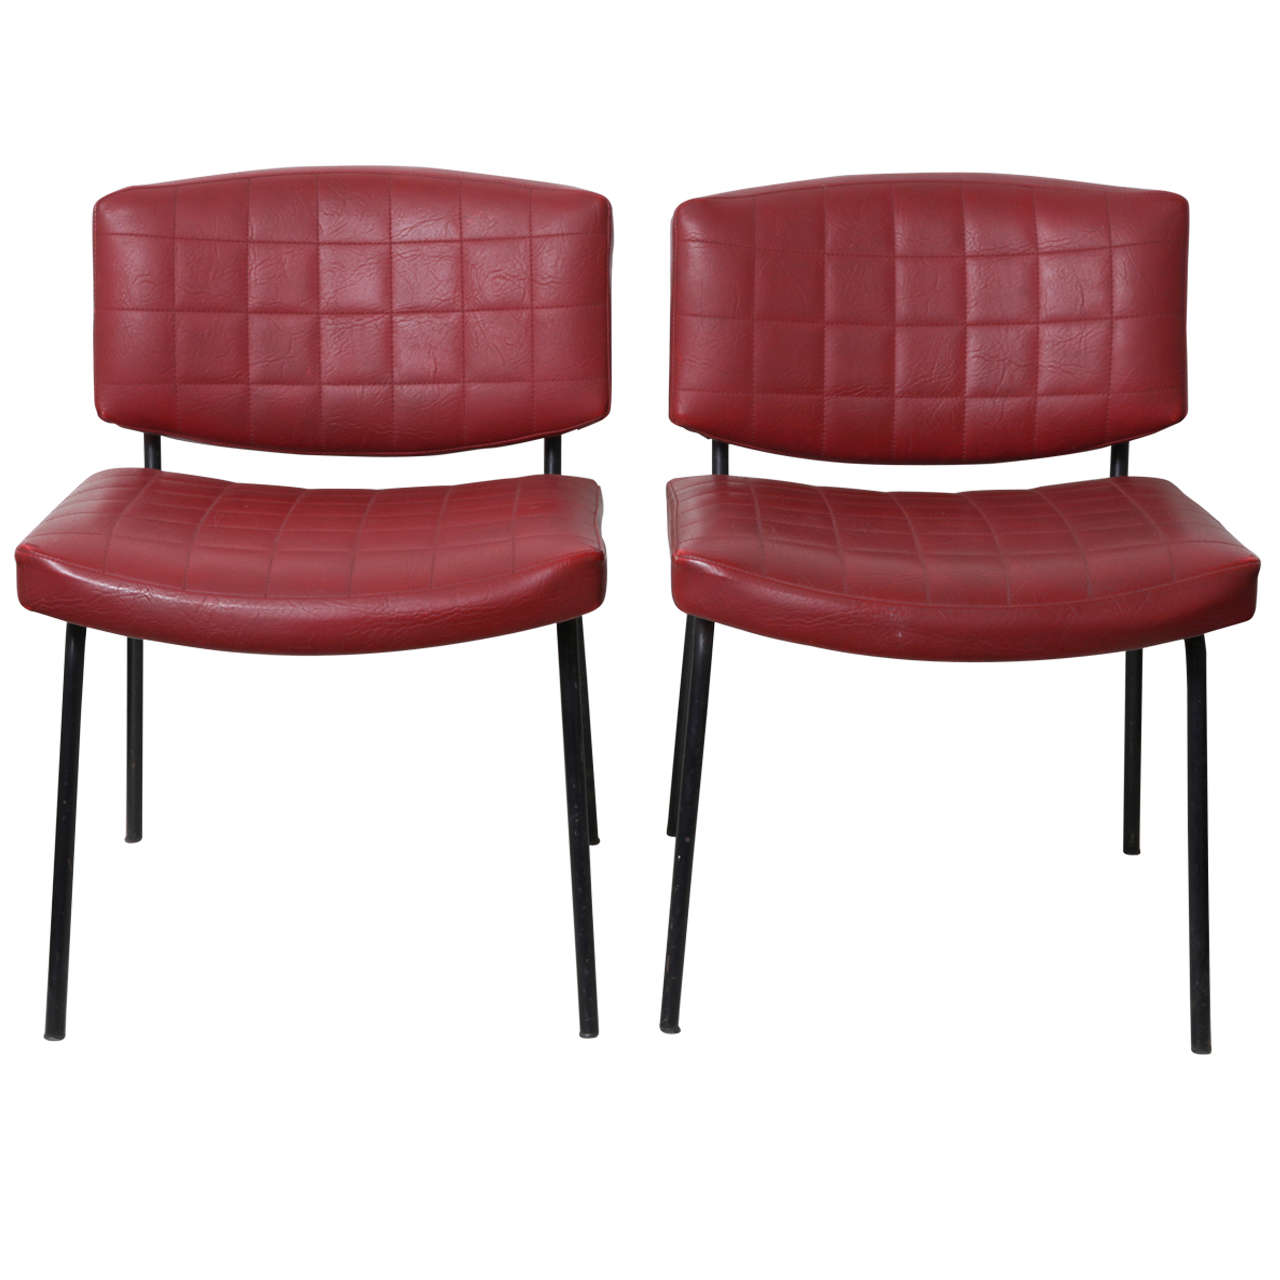 red vinyl lounge chairs by pierre guariche at 1stdibs. Black Bedroom Furniture Sets. Home Design Ideas